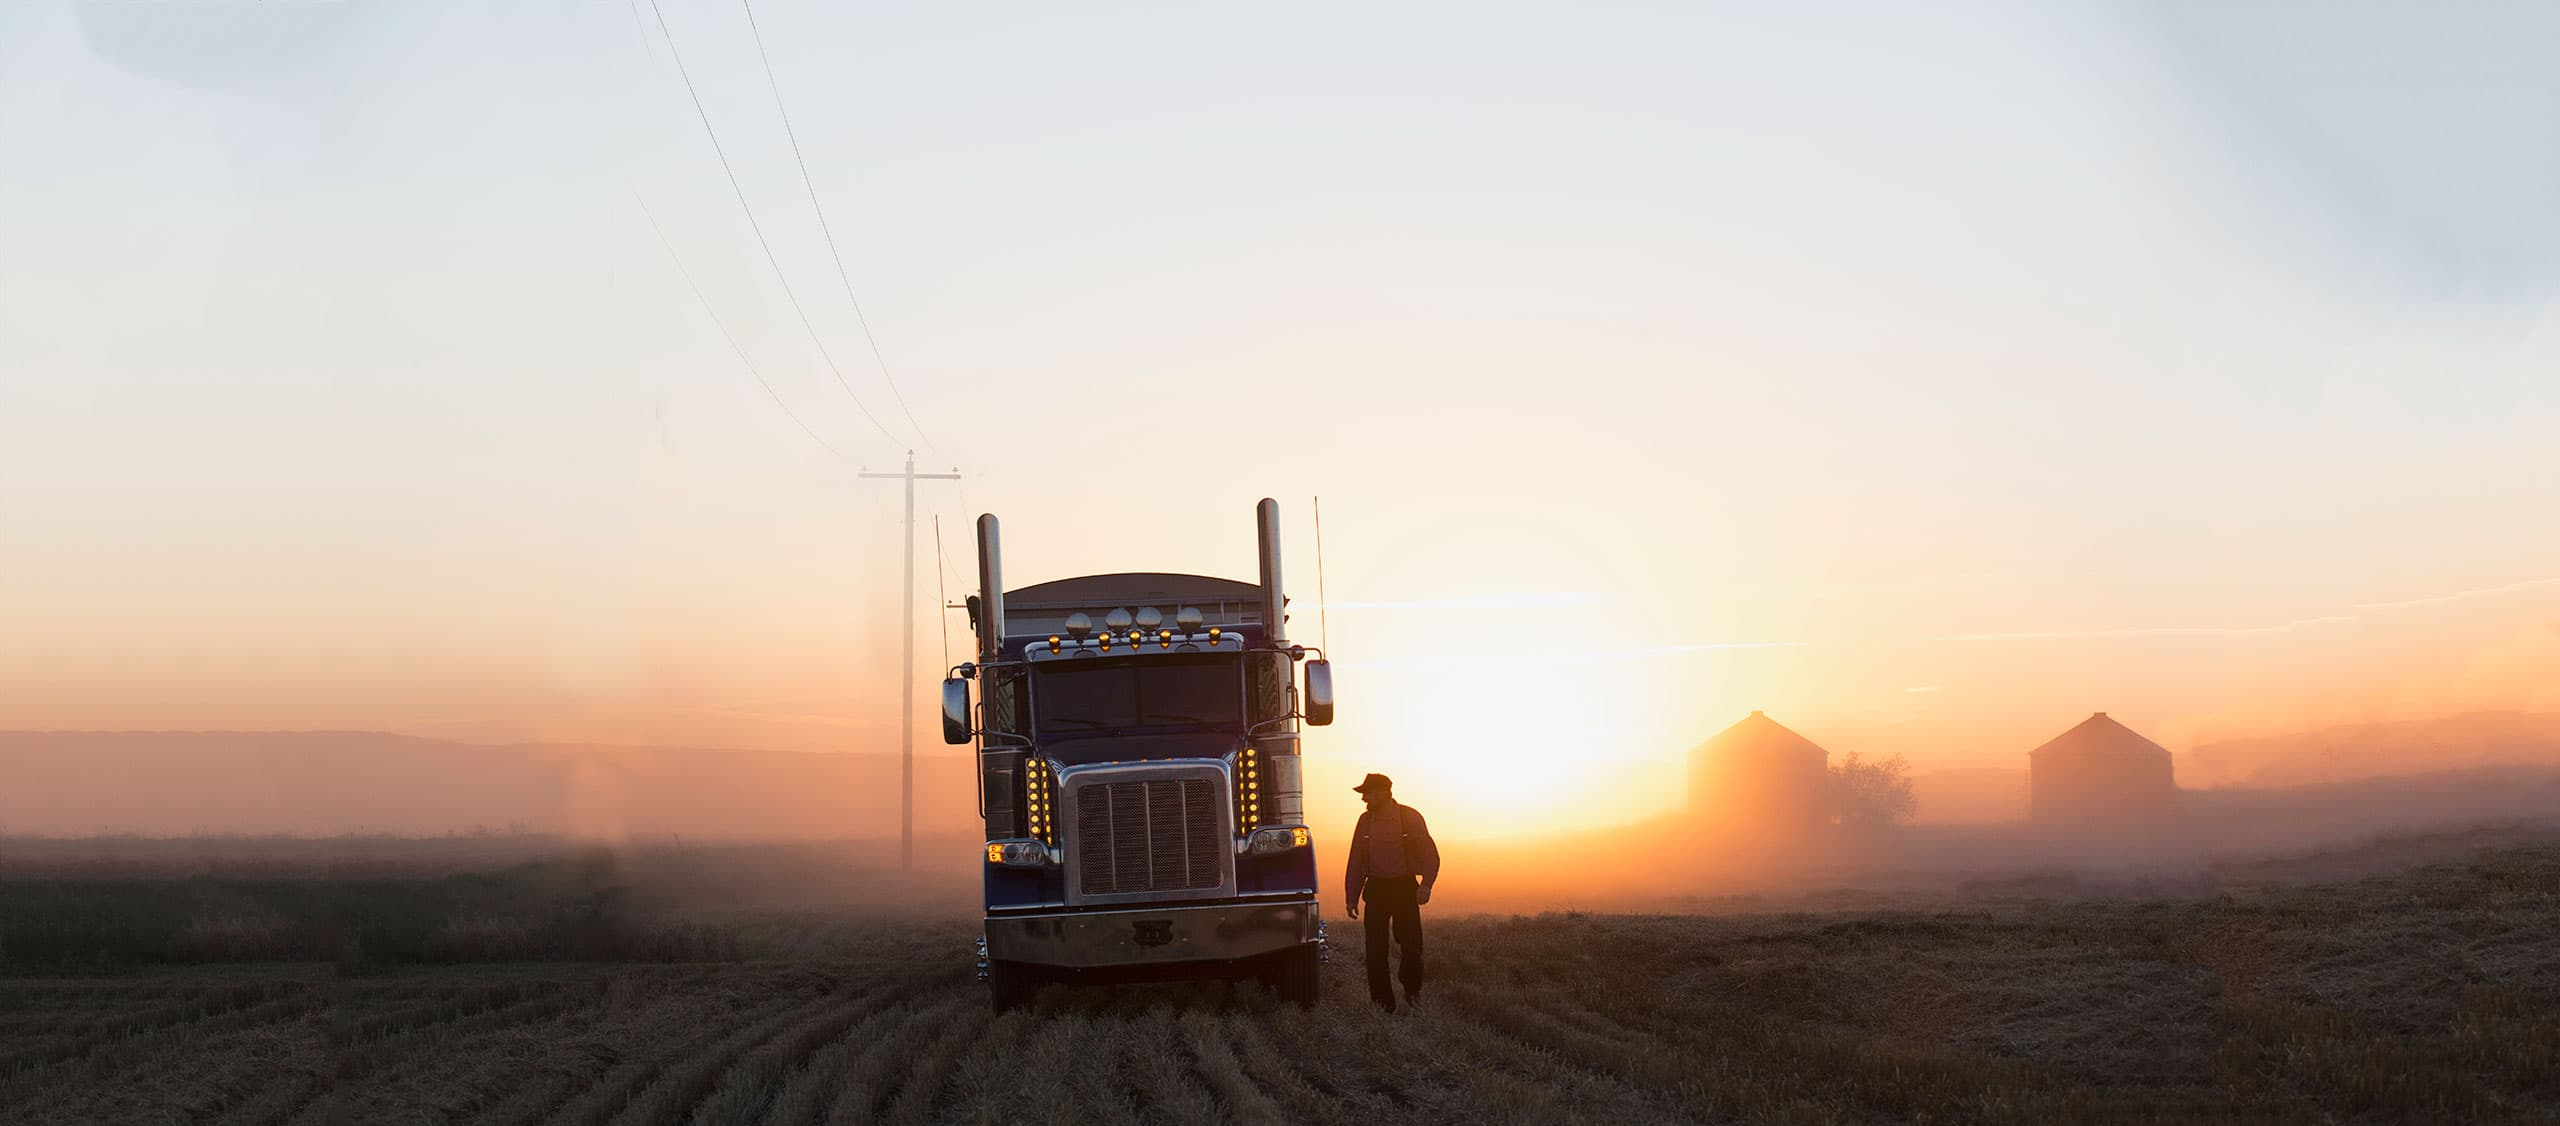 Rig and driver at dusk in a field.